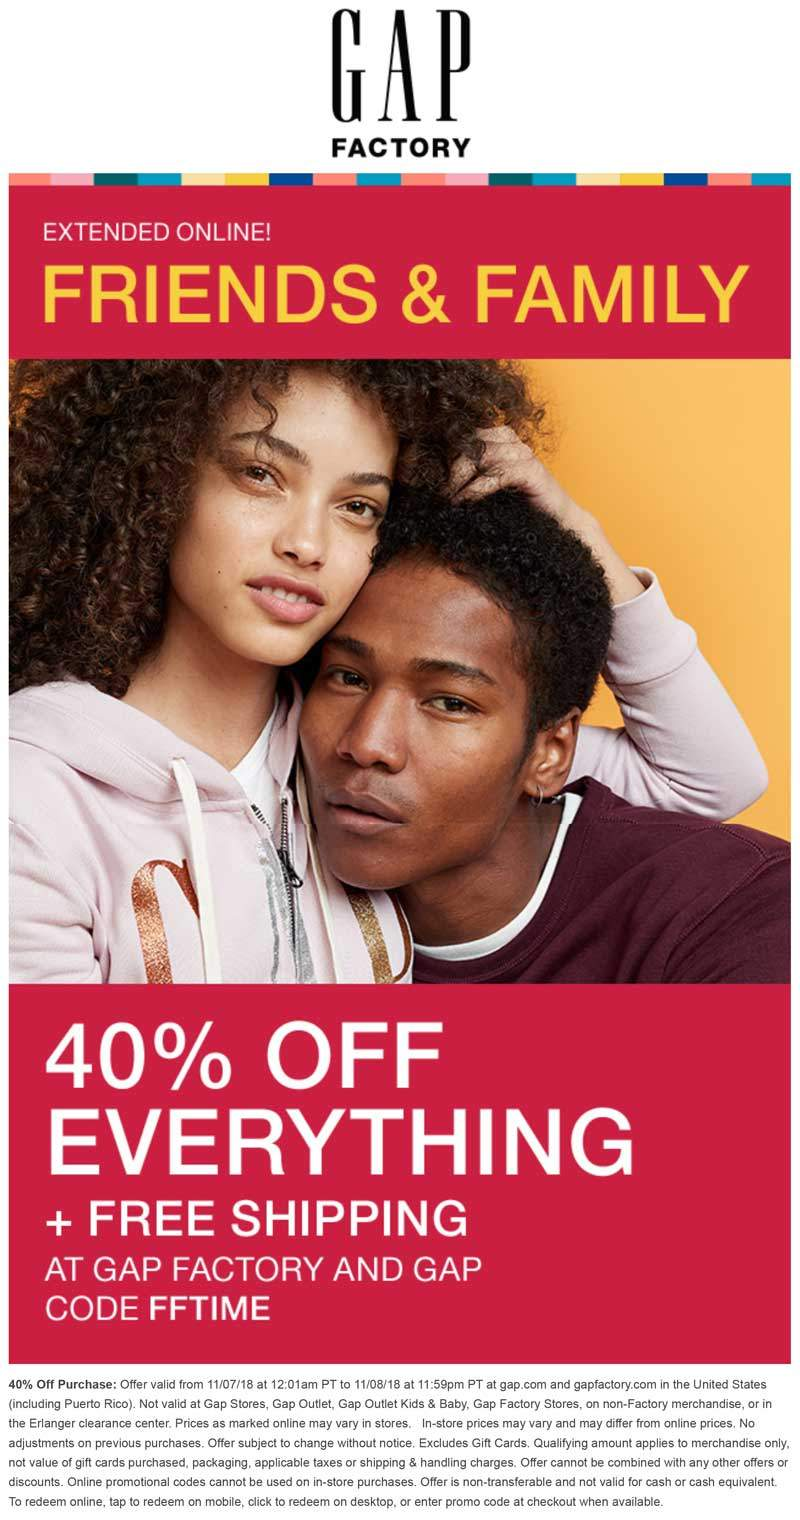 Gap Factory Coupon September 2019 40% off online today at Gap Factory via promo code FFTIME